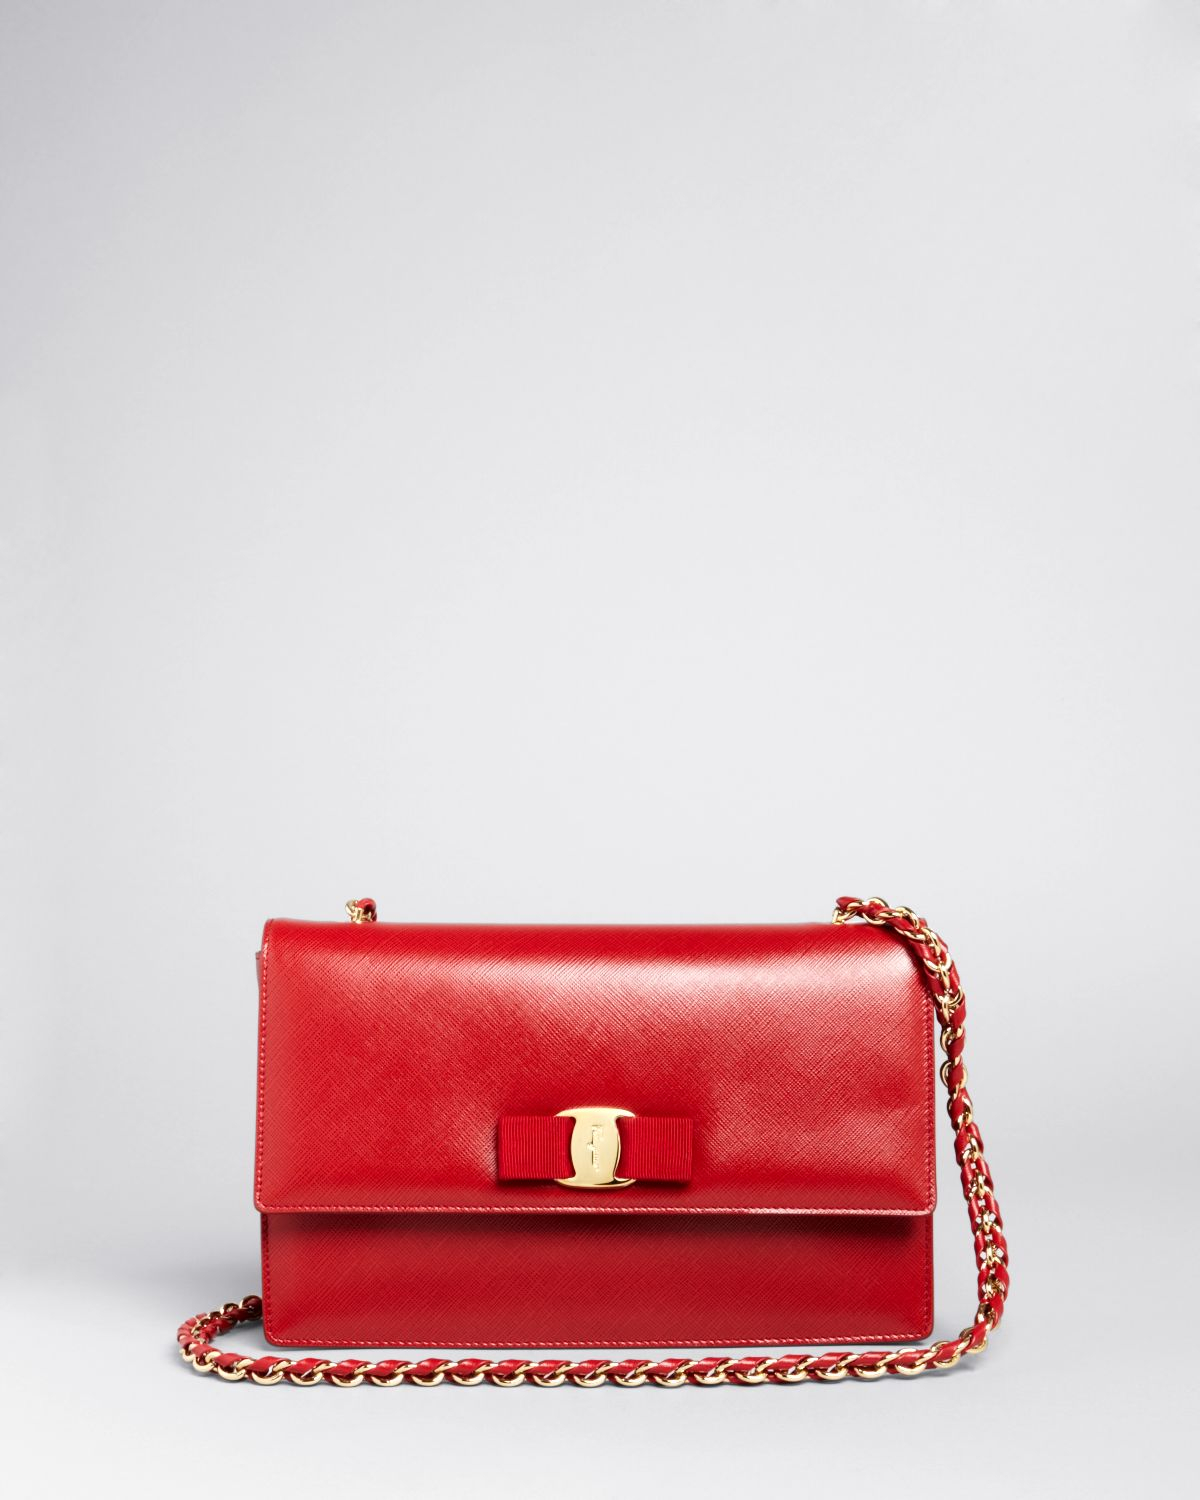 Ferragamo Shoulder Bag - Ginny in Red | Lyst